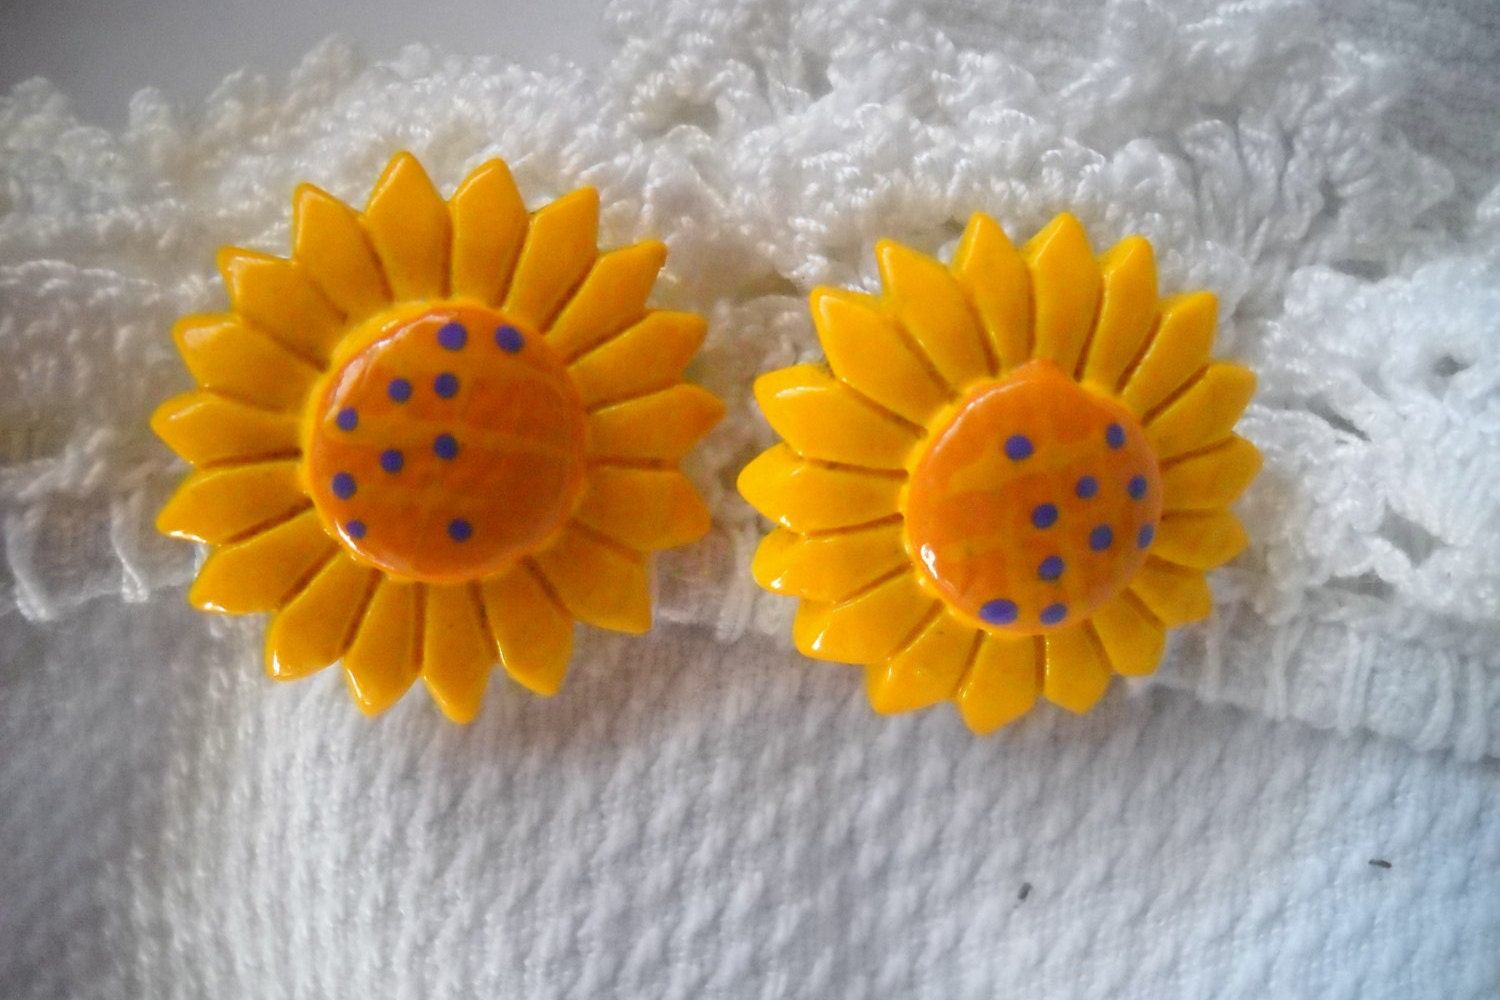 Vintage Plastic Flower Earrings 1960 s Sunflower